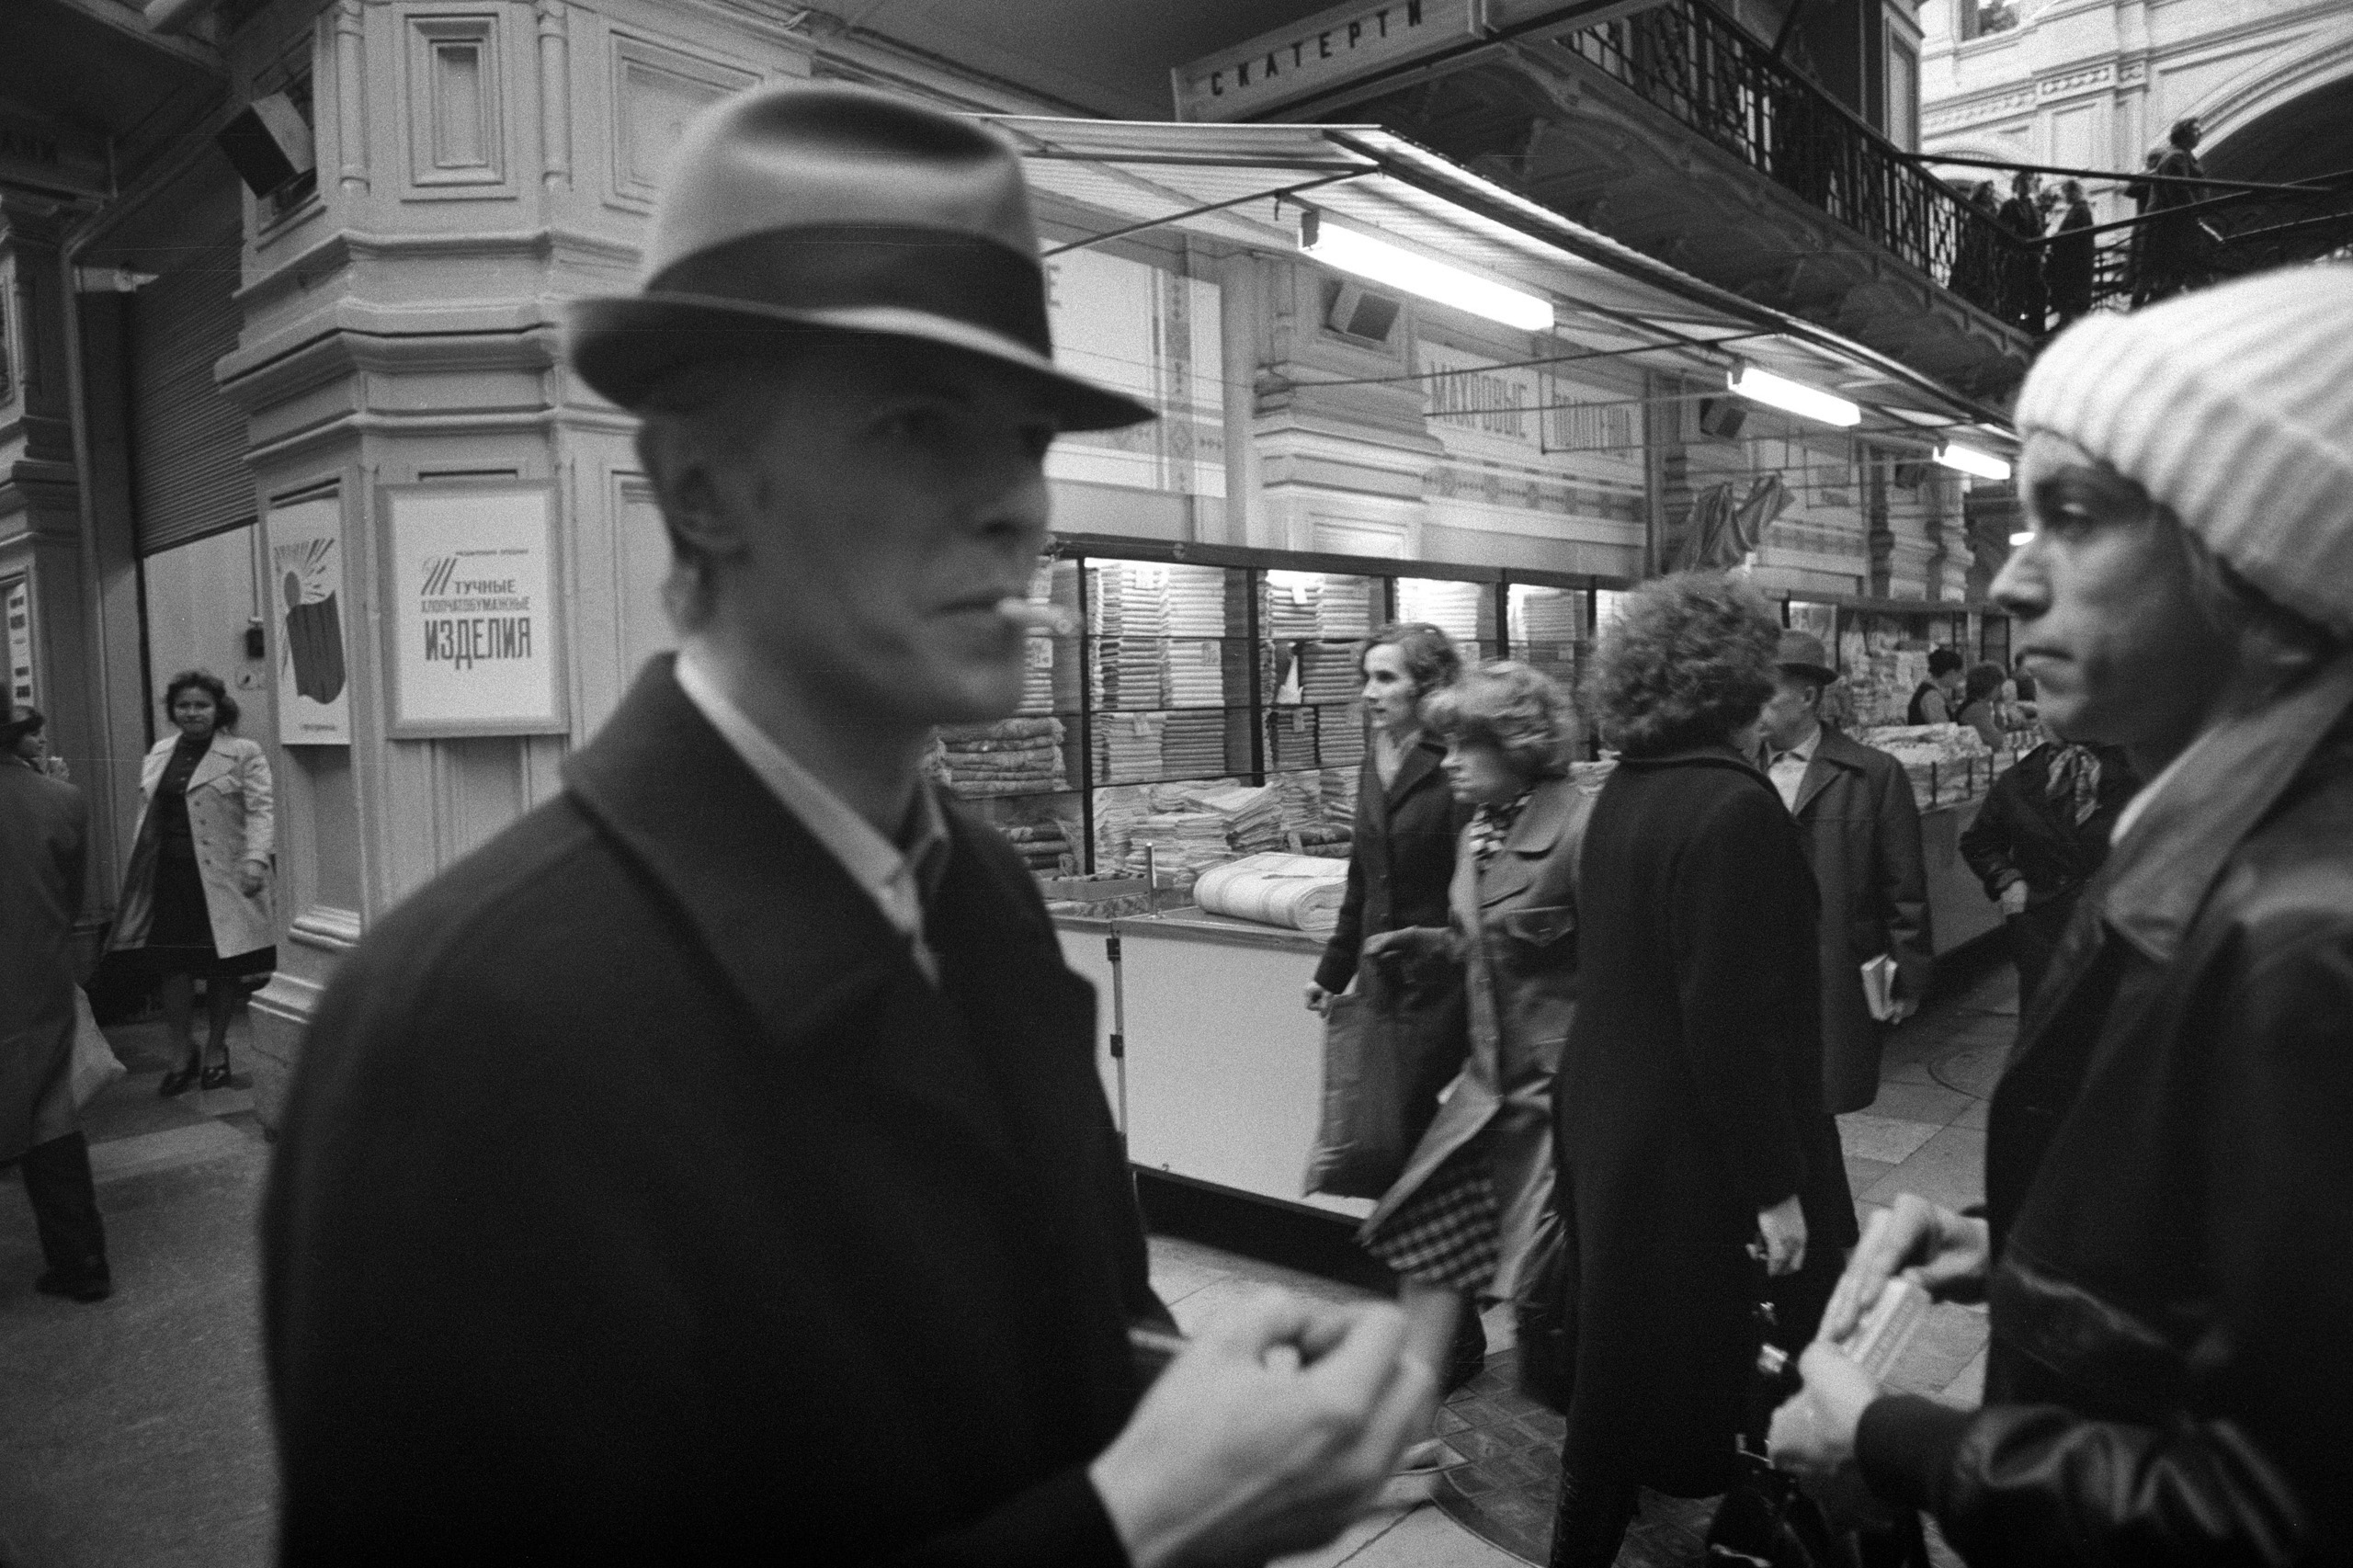 Bowie and Iggy Pop as they make their way unnoticed through a market off Moscow's Red Square, 1976.